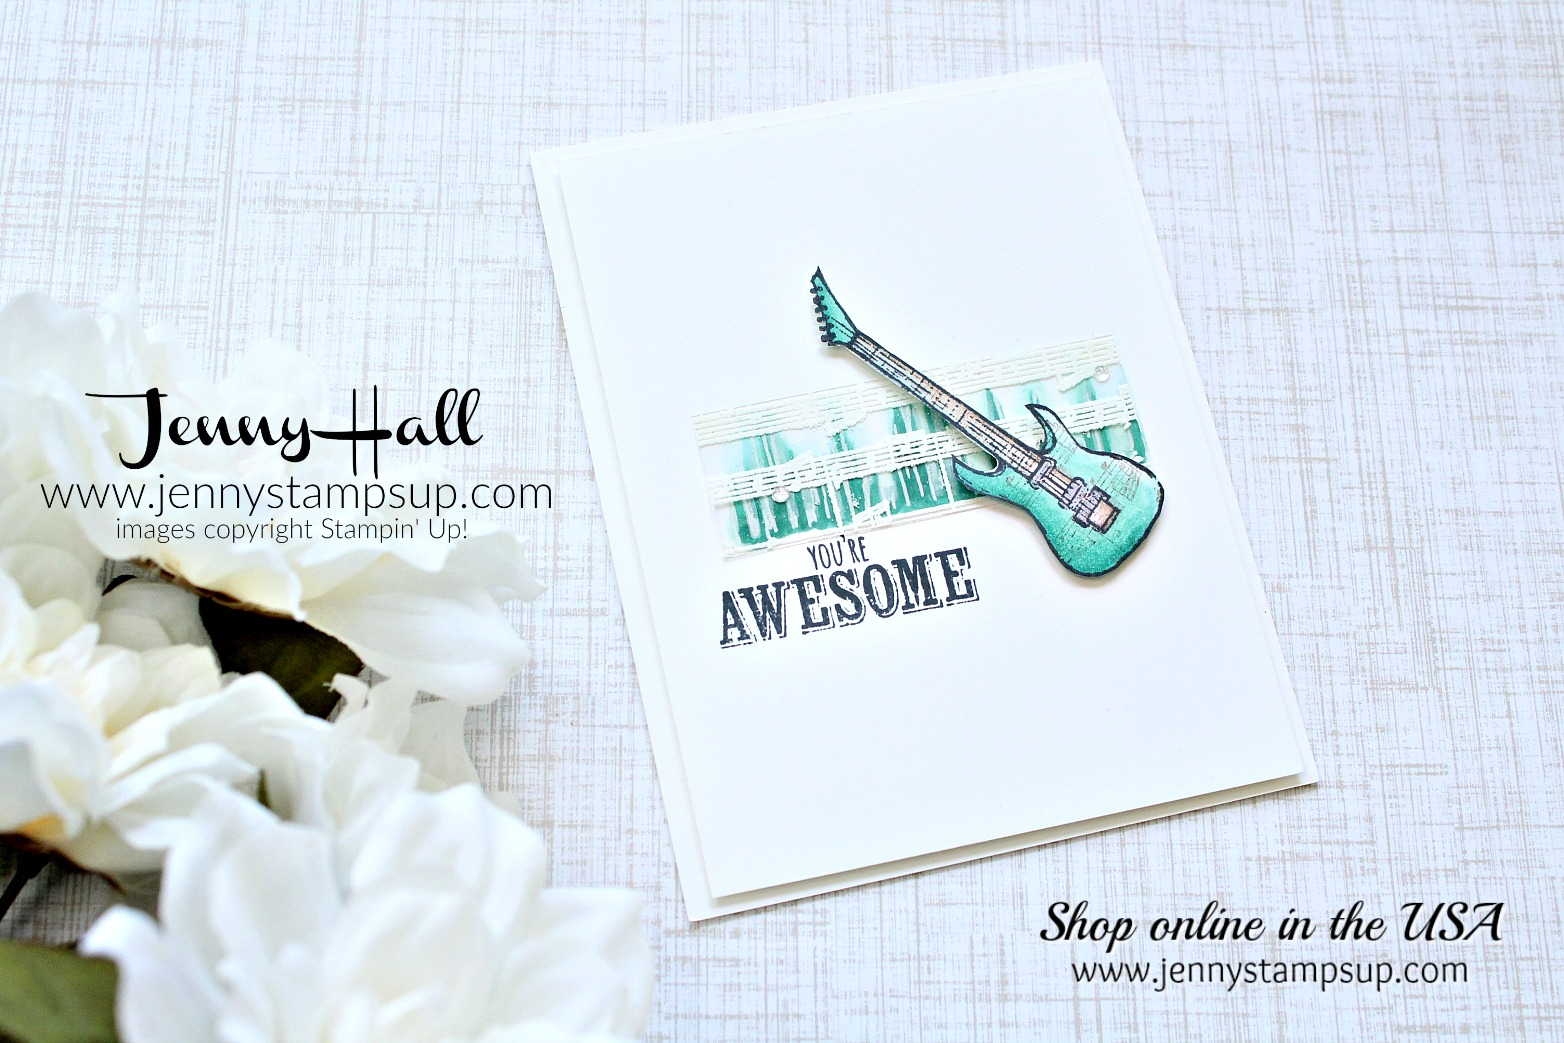 Epic Celebrations card created by Jenny Hall at www.jennystampsup.com for #cardmaking #stamping #stampinup #cascards #cleanandsimplecards #alcoholmarkers #awesome80's #1980's #hardrock #heavymetal #stampinblends #embossonacetate #jennyhalldesign #papercraft #youtuber #cardmakingtutorial #crafts #diy